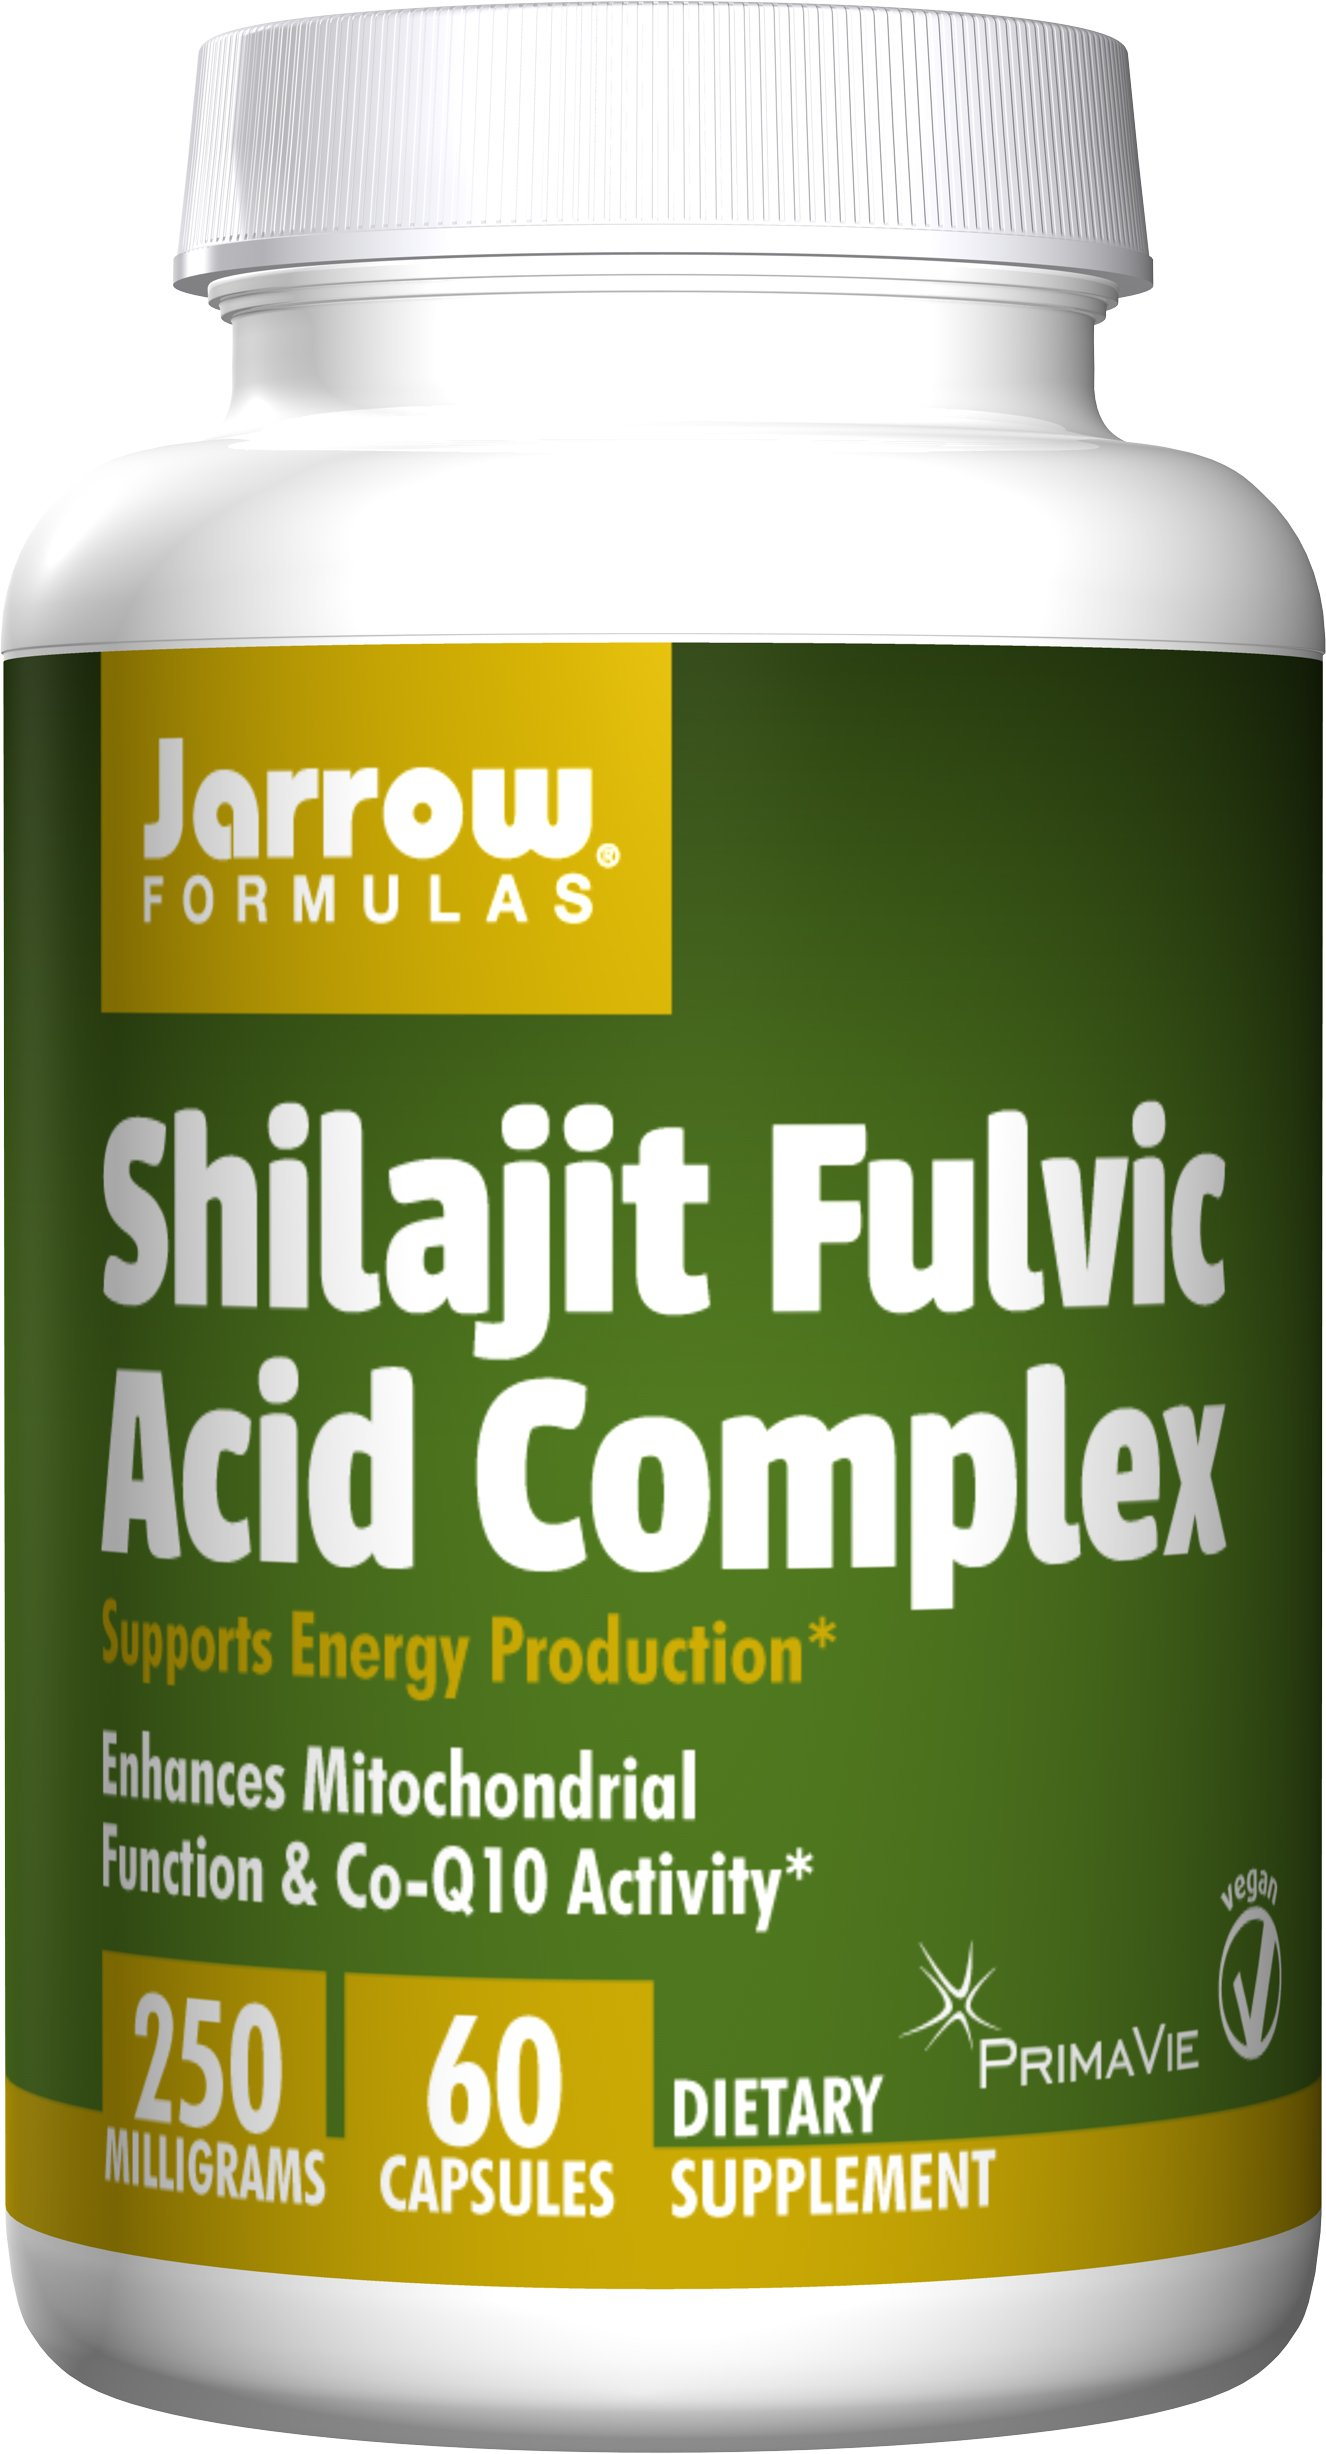 Jarrow Formulas Shilajit Fulvic Acid Complex 250 Mg, Supports Energy Production, 60 Veggie Caps